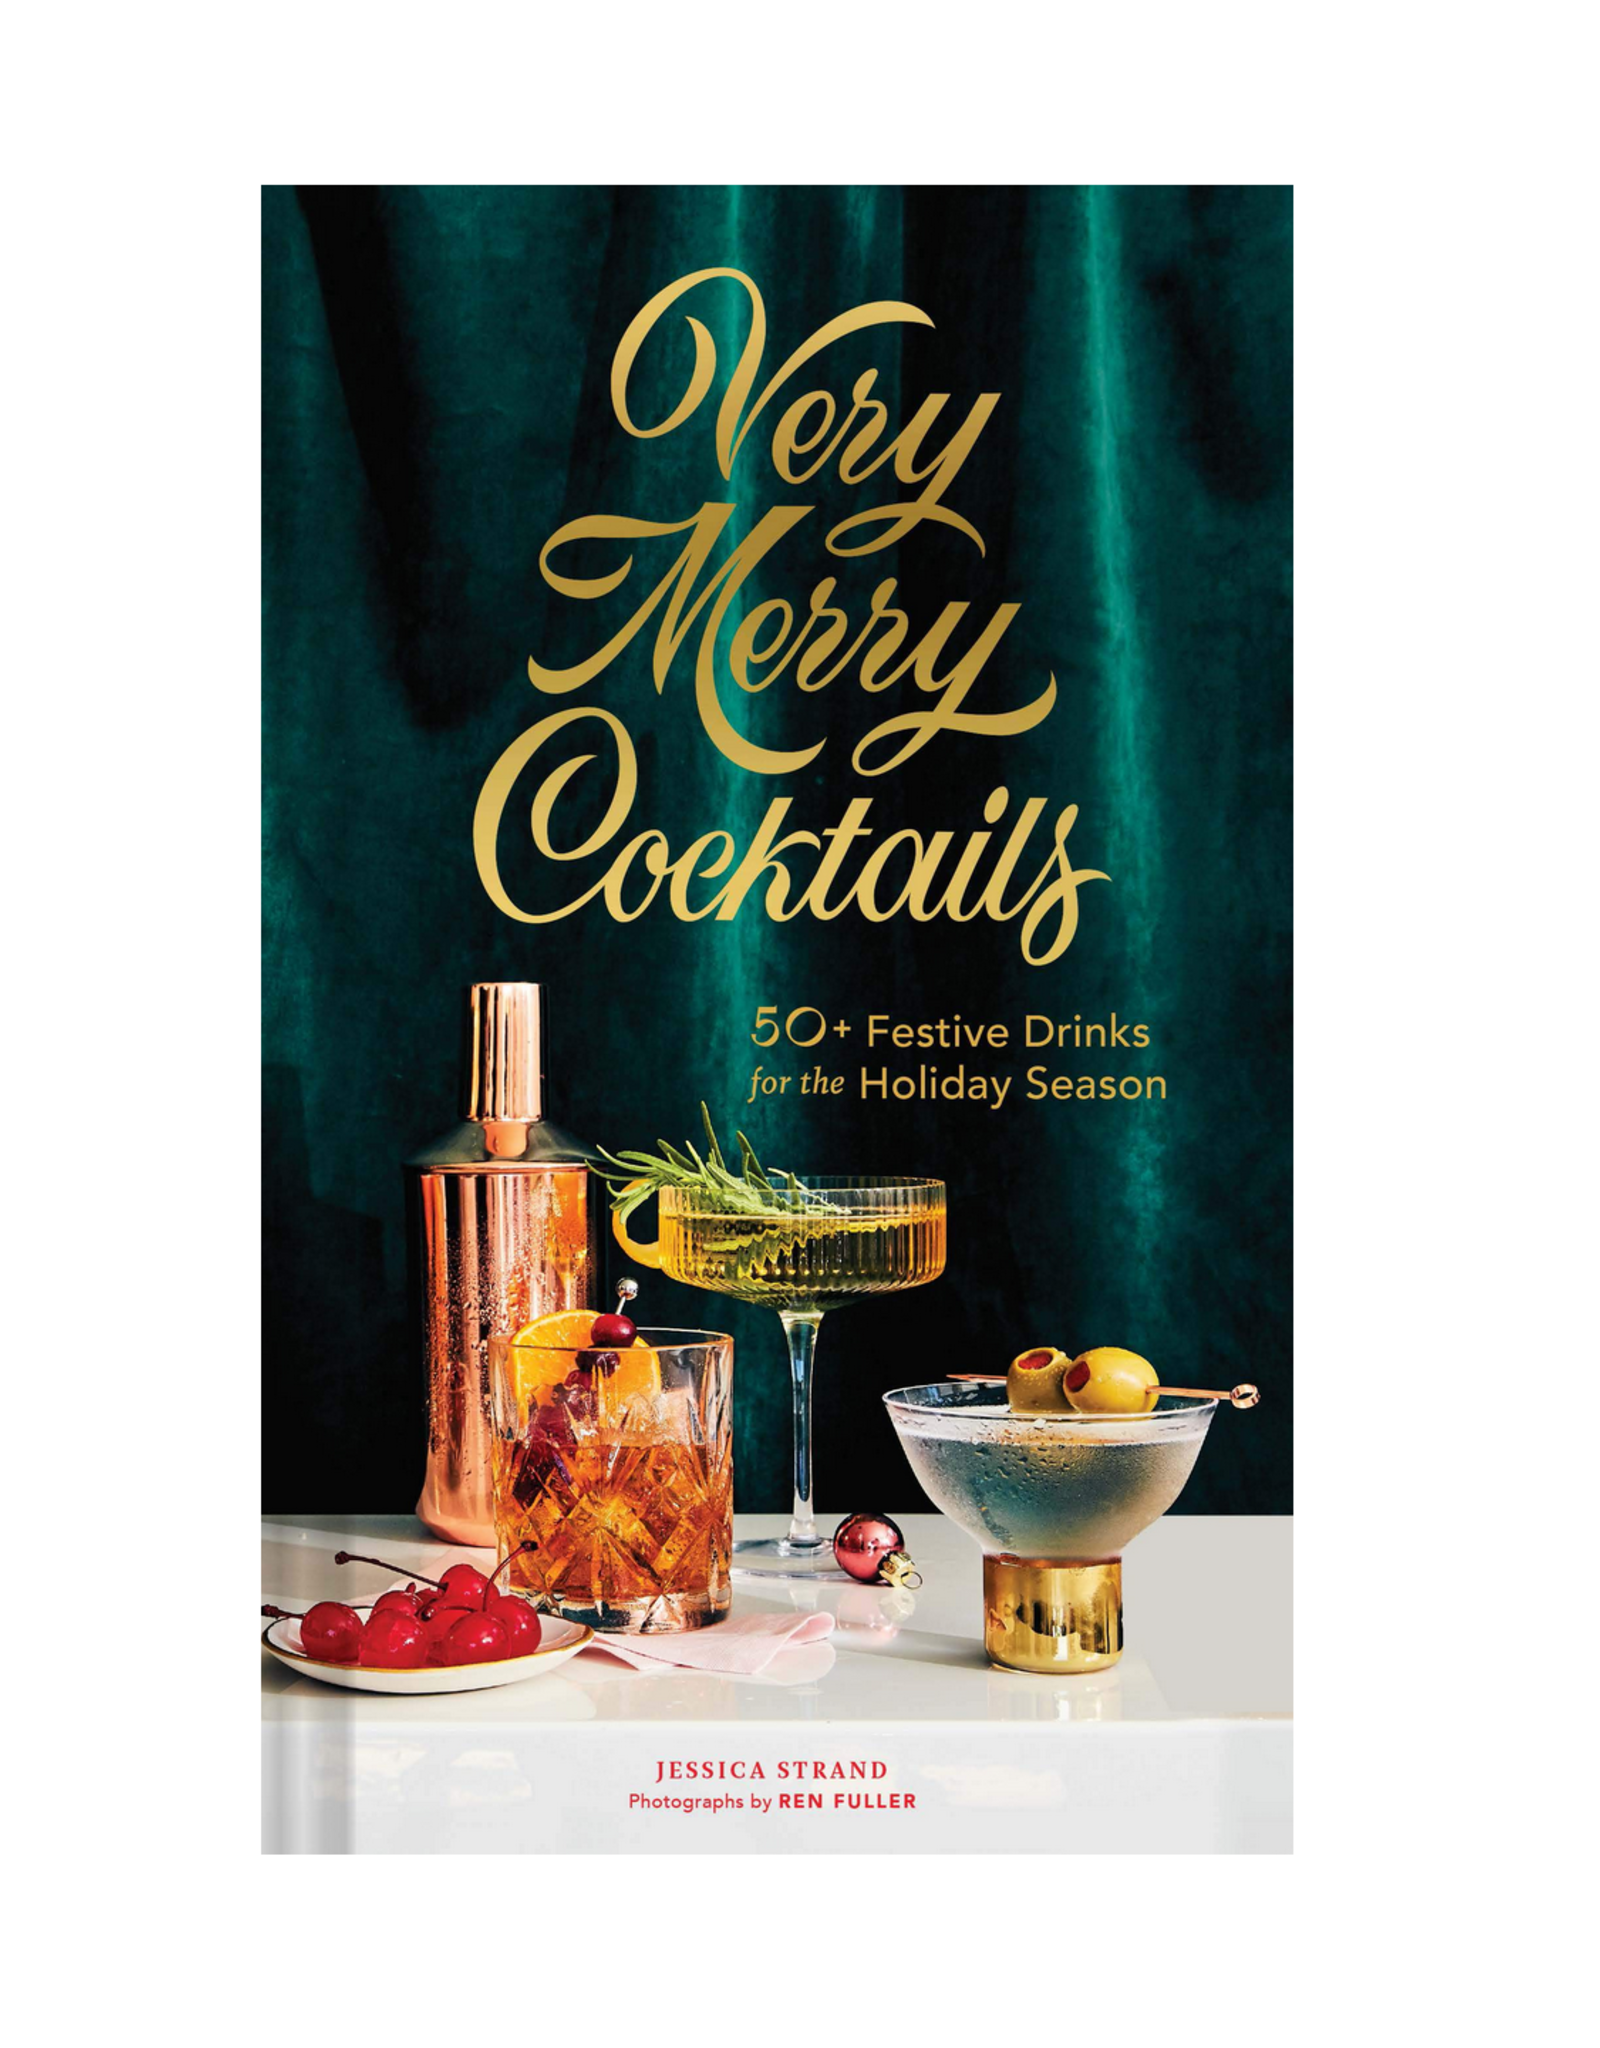 Very Merry Cocktails - Seconds Sale!